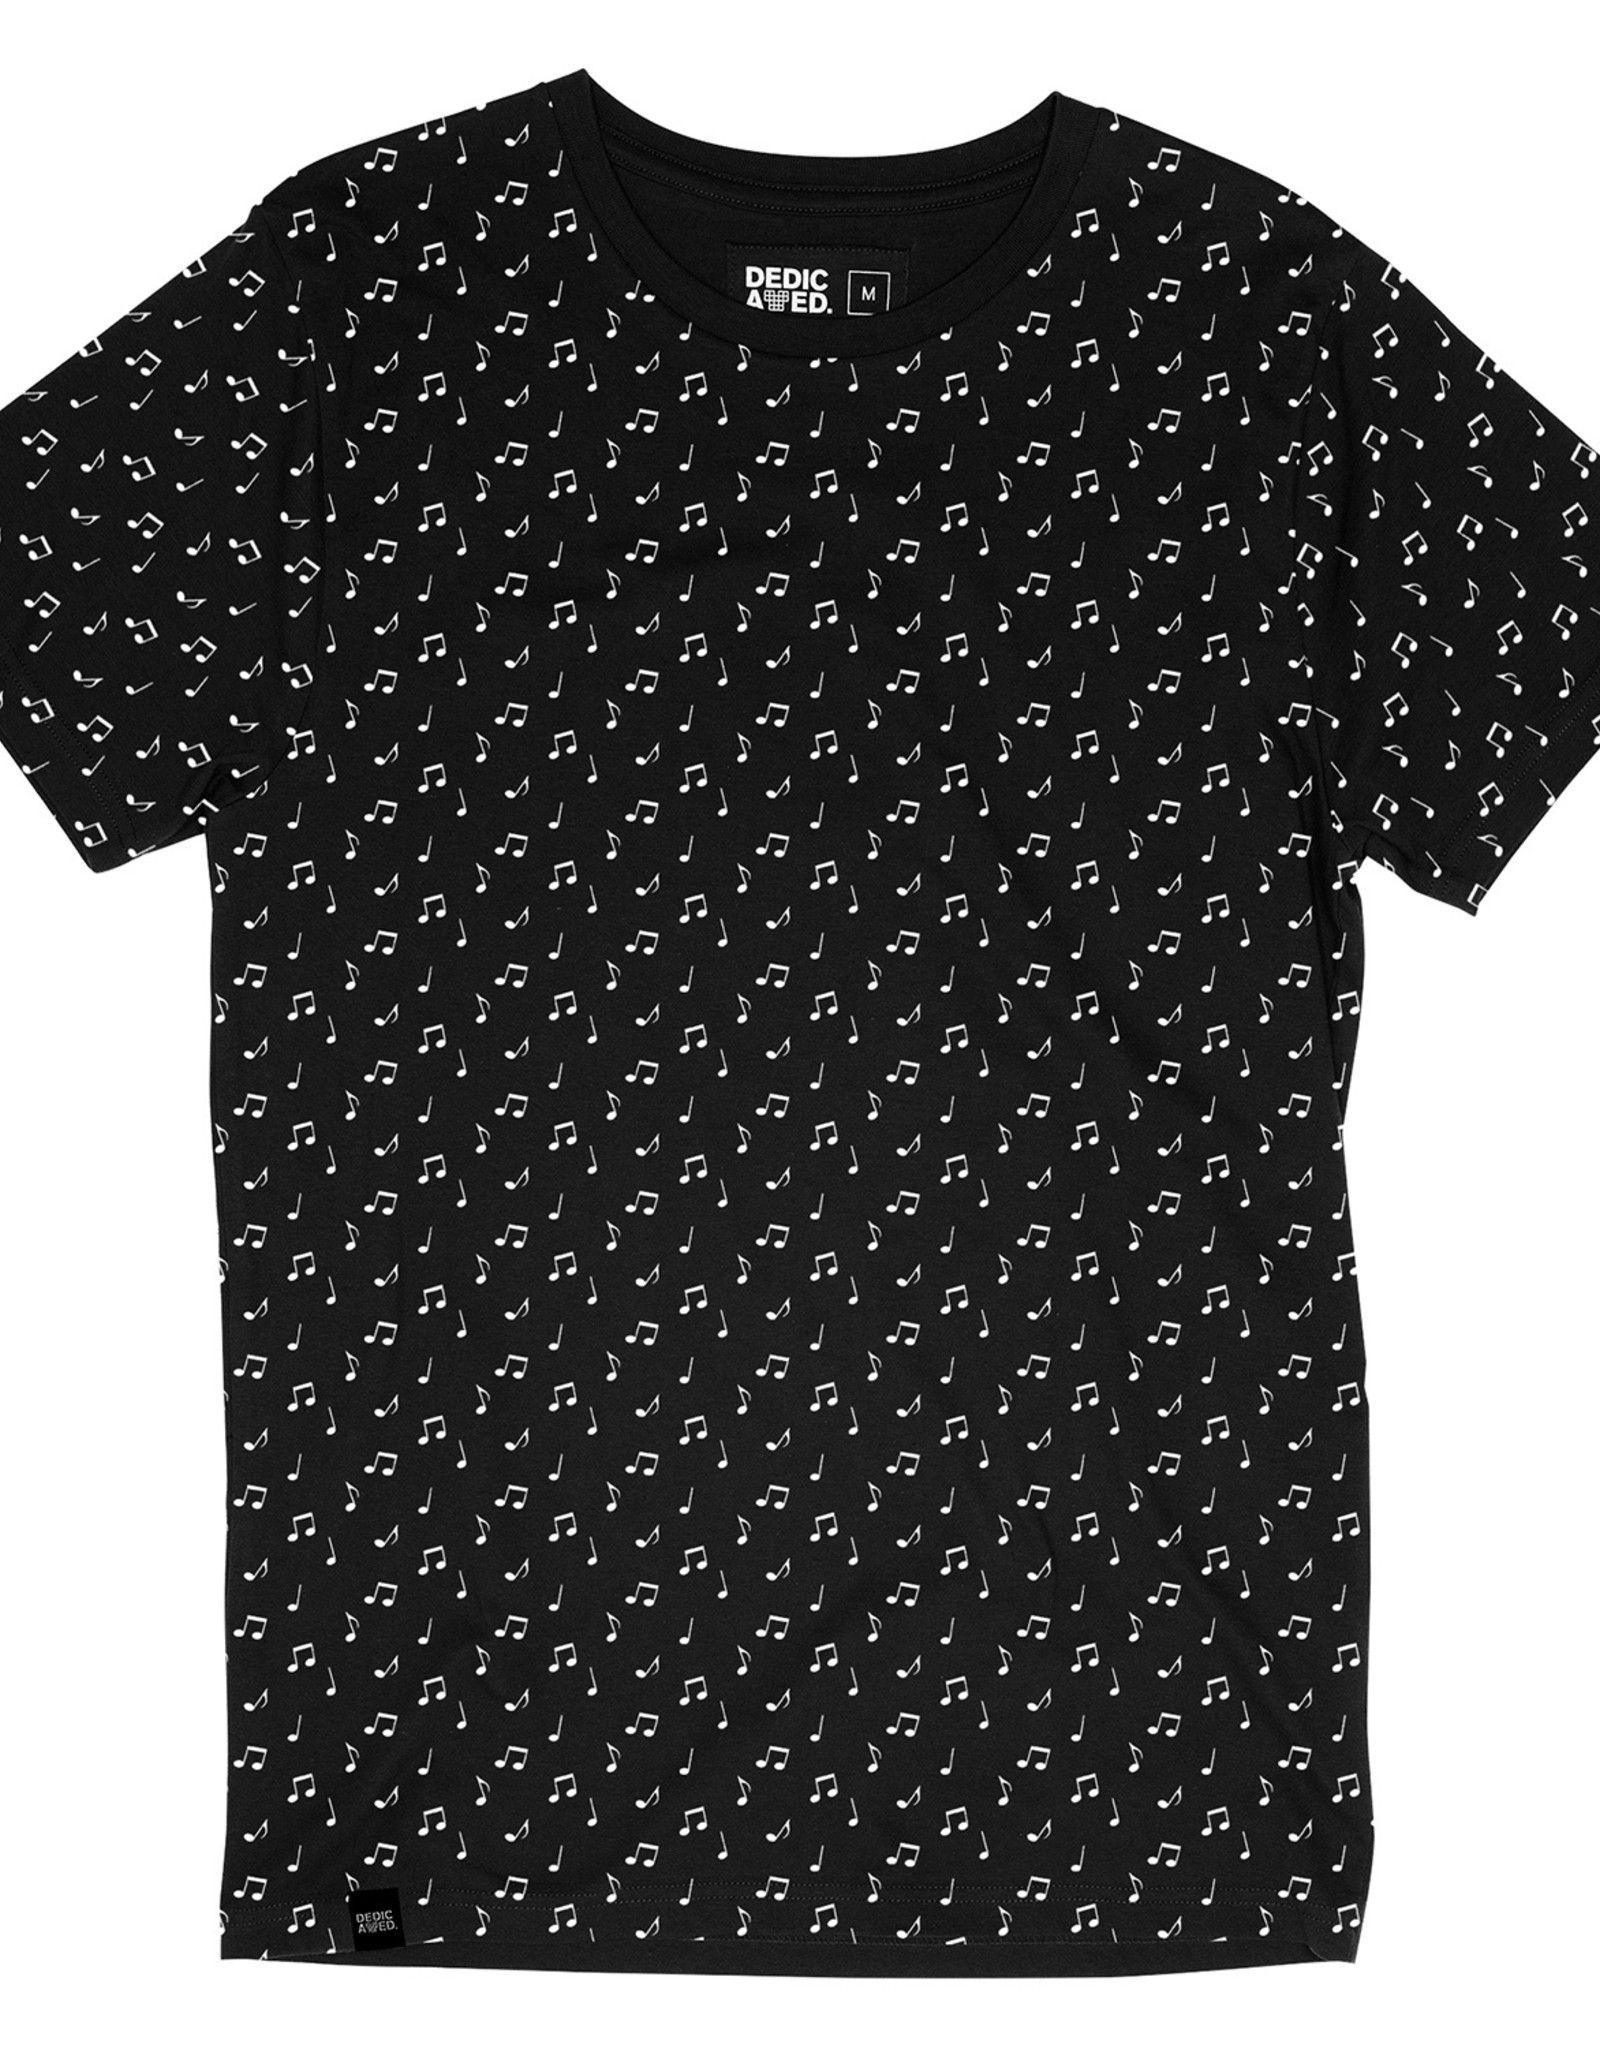 Dedicated T-SHIRT MUSIC NOTES BLACK